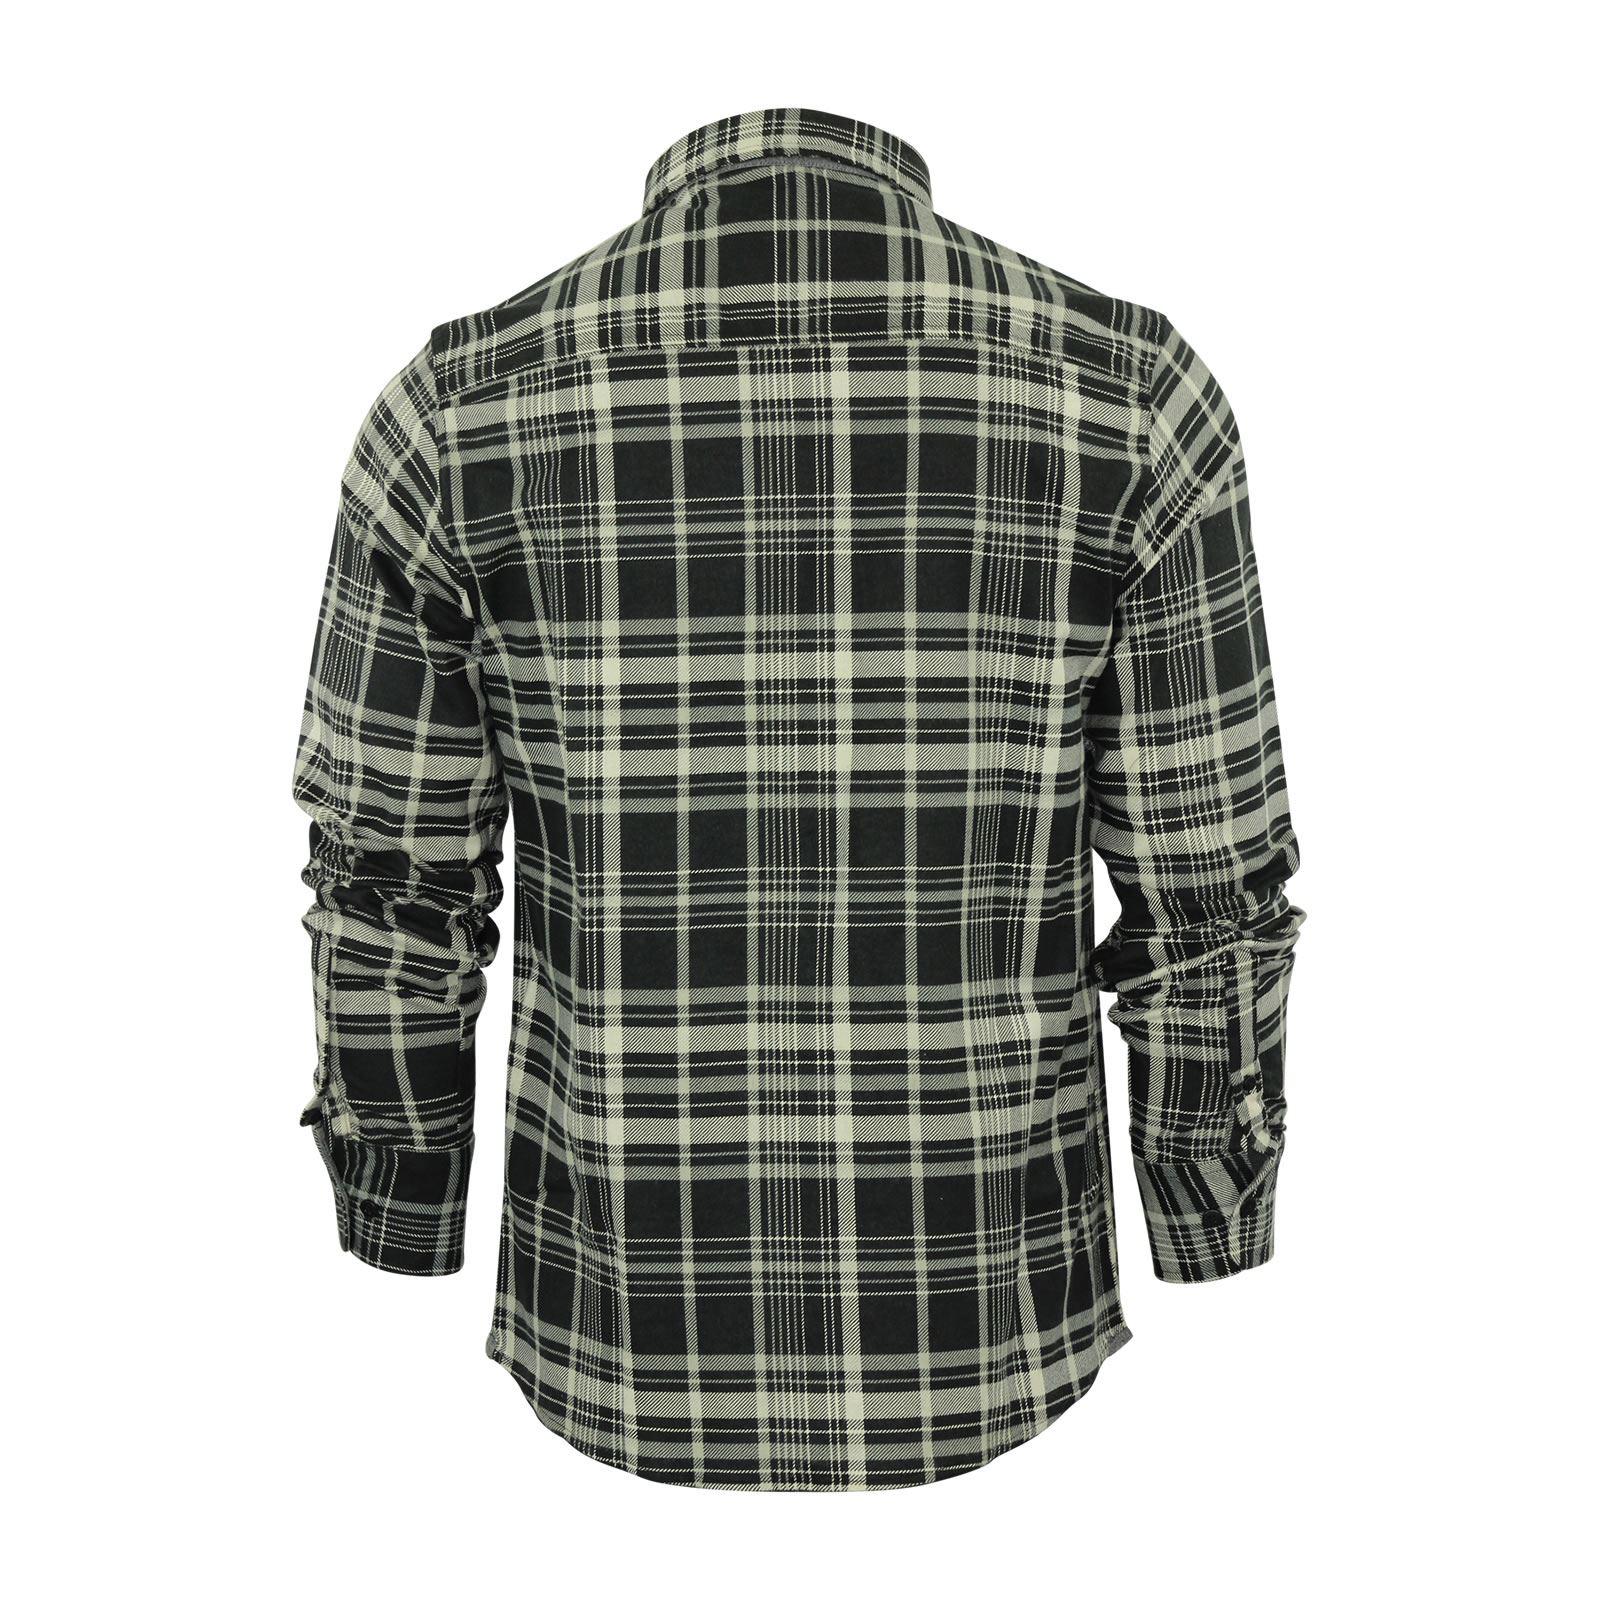 Mens-Check-Shirt-Brave-Soul-Flannel-Brushed-Cotton-Long-Sleeve-Casual-Top thumbnail 33